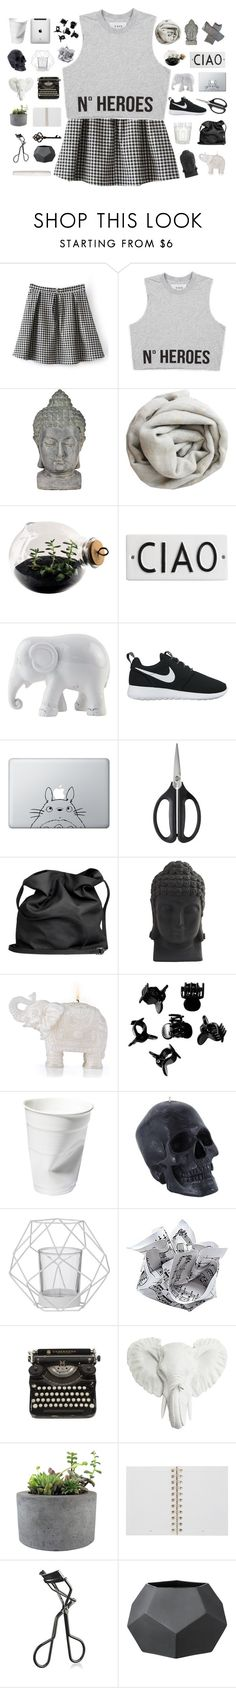 """""""N o  H E R O S"""" by abbeyso ❤ liked on Polyvore featuring Universal Lighting and Decor, Brunello Cucinelli, Esque Studio, Rosanna, The Elephant Family, NIKE, Humör, OXO, Ann Demeulemeester and Nearly Natural"""